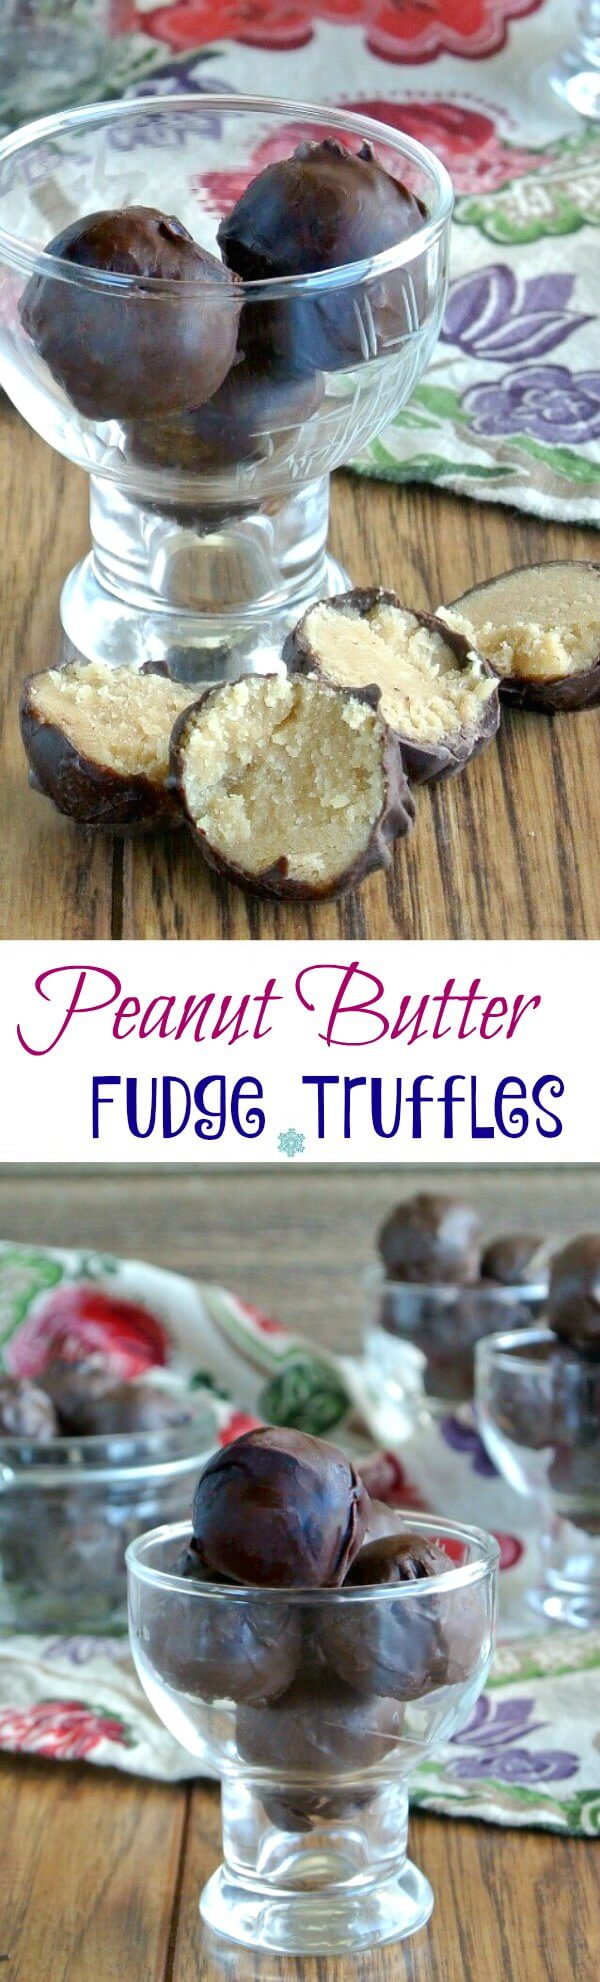 Peanut Butter Fudge Truffles are creamy and decadent on their own but why not cover them in chocolate and take these confections over the top. So good!